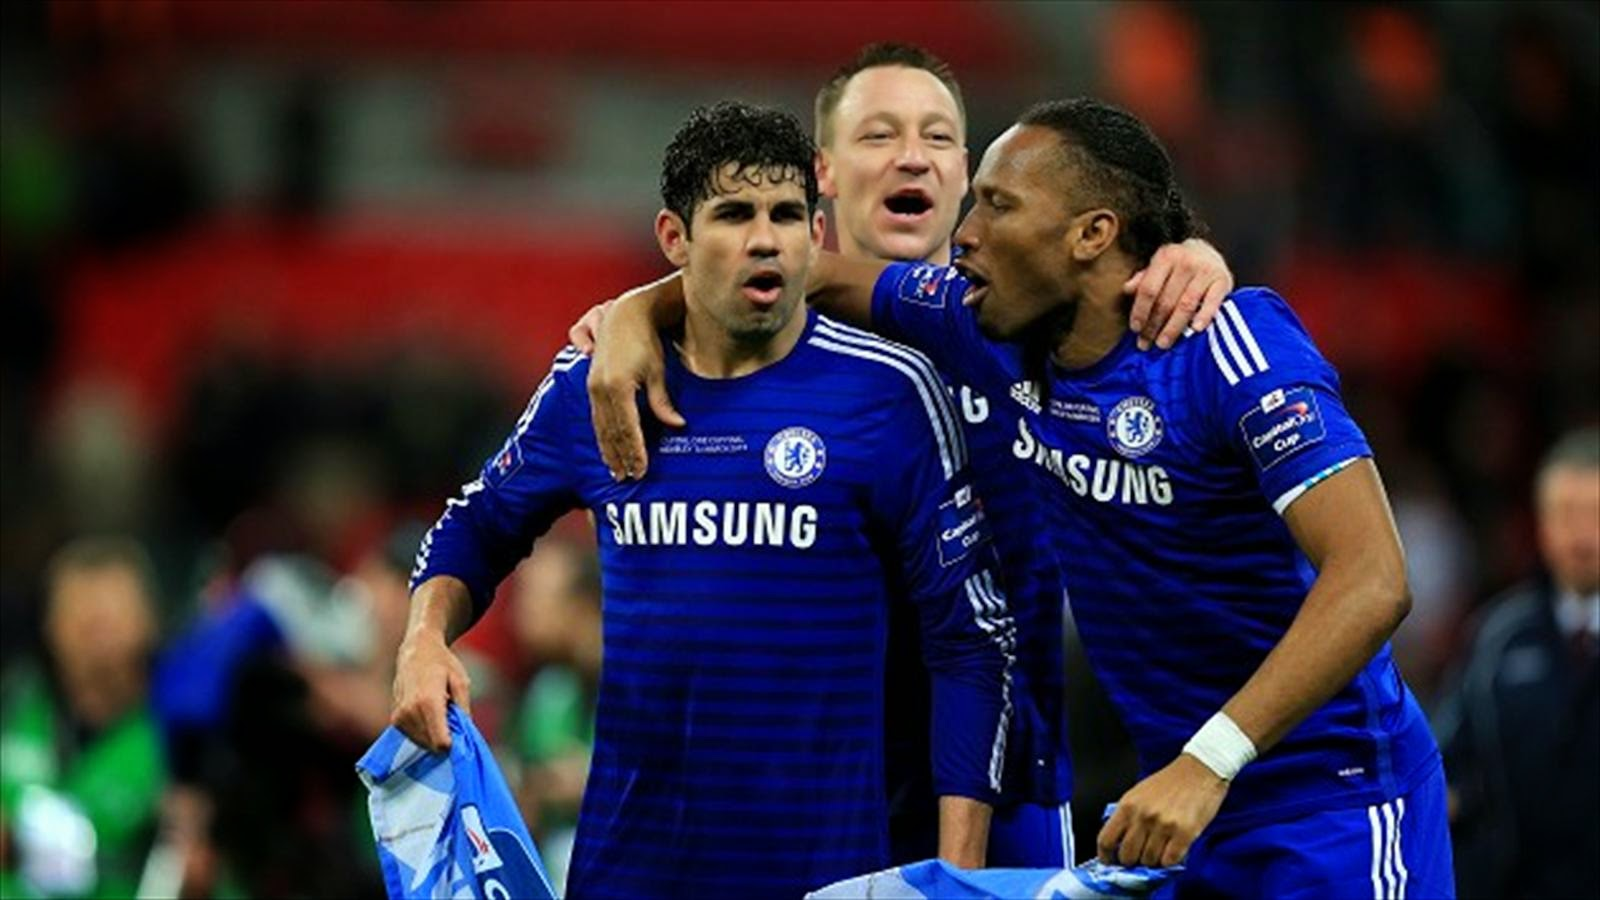 The Diego Costa Di r Drogba parison Can anyone see it